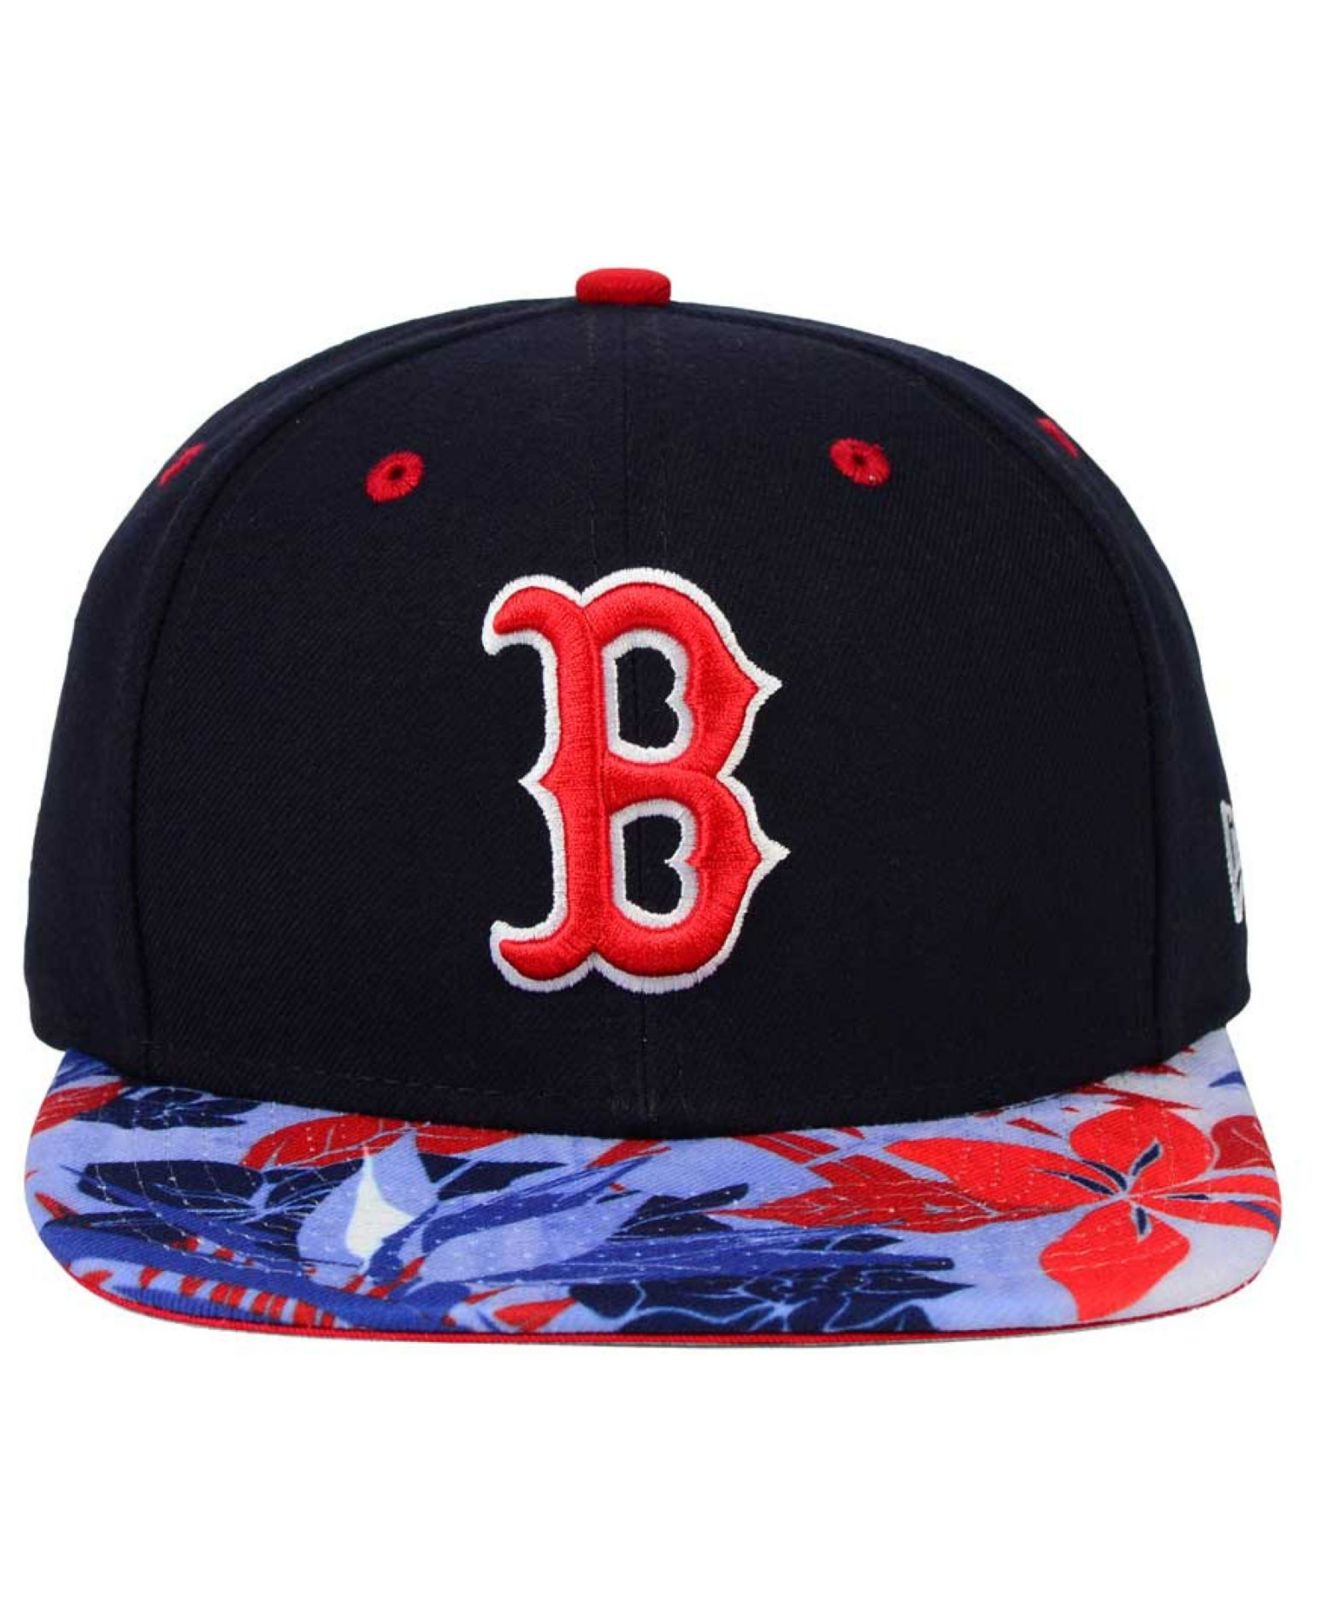 newest a6930 f9a10 ... get lyst ktz boston red sox floral viz 9fifty snapback cap in blue for  men 81cfa